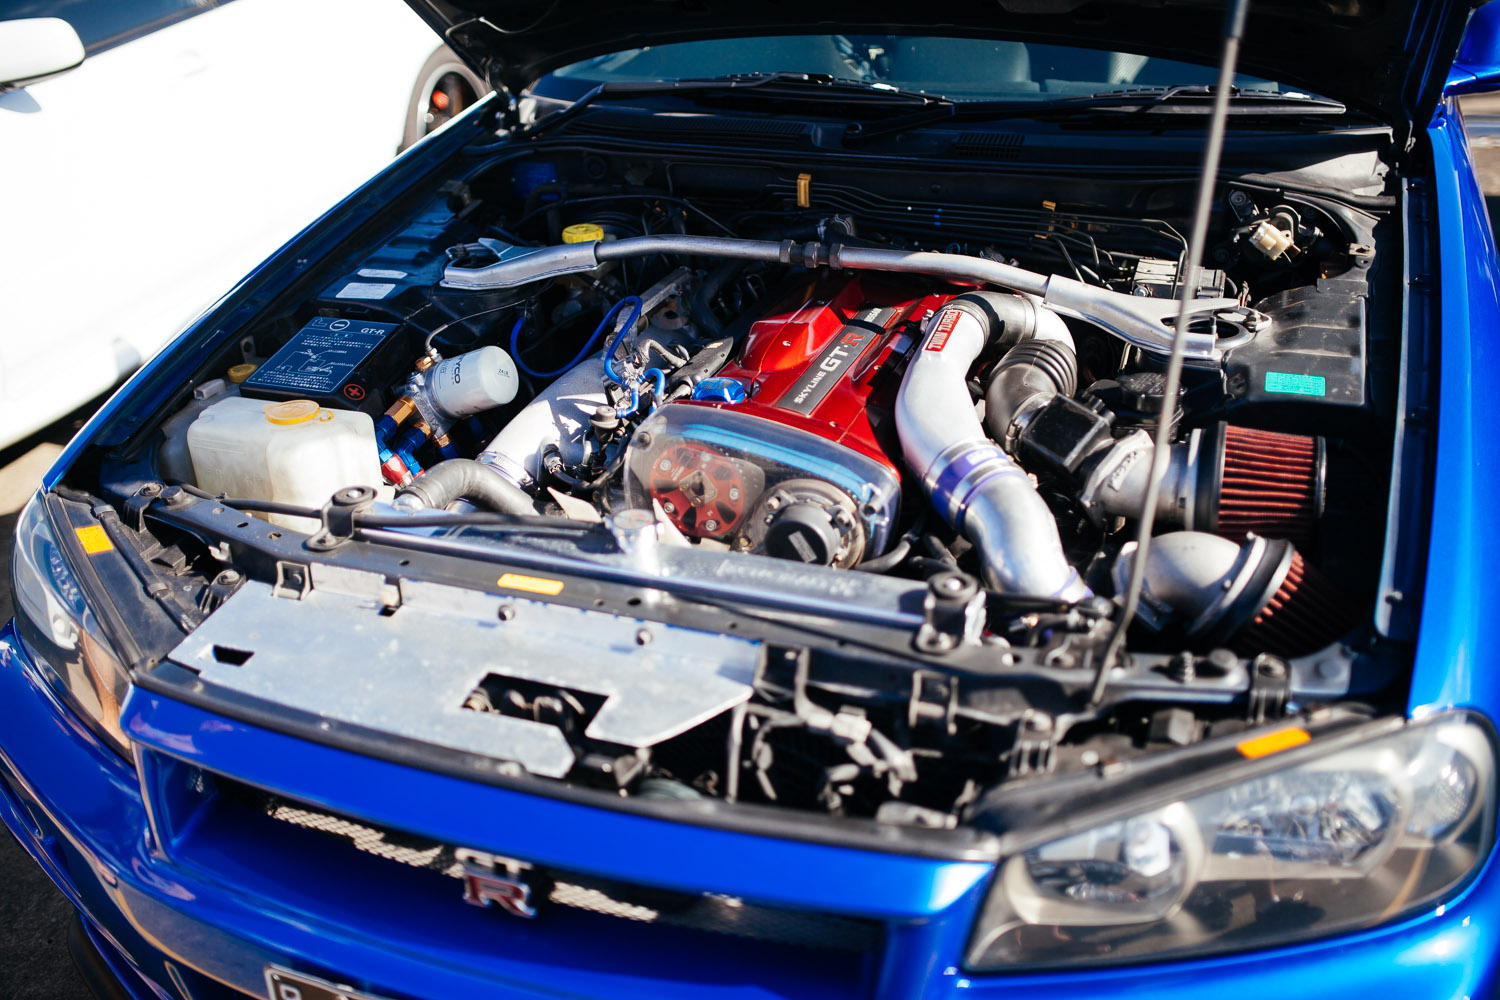 Sparkling clean engine bay.